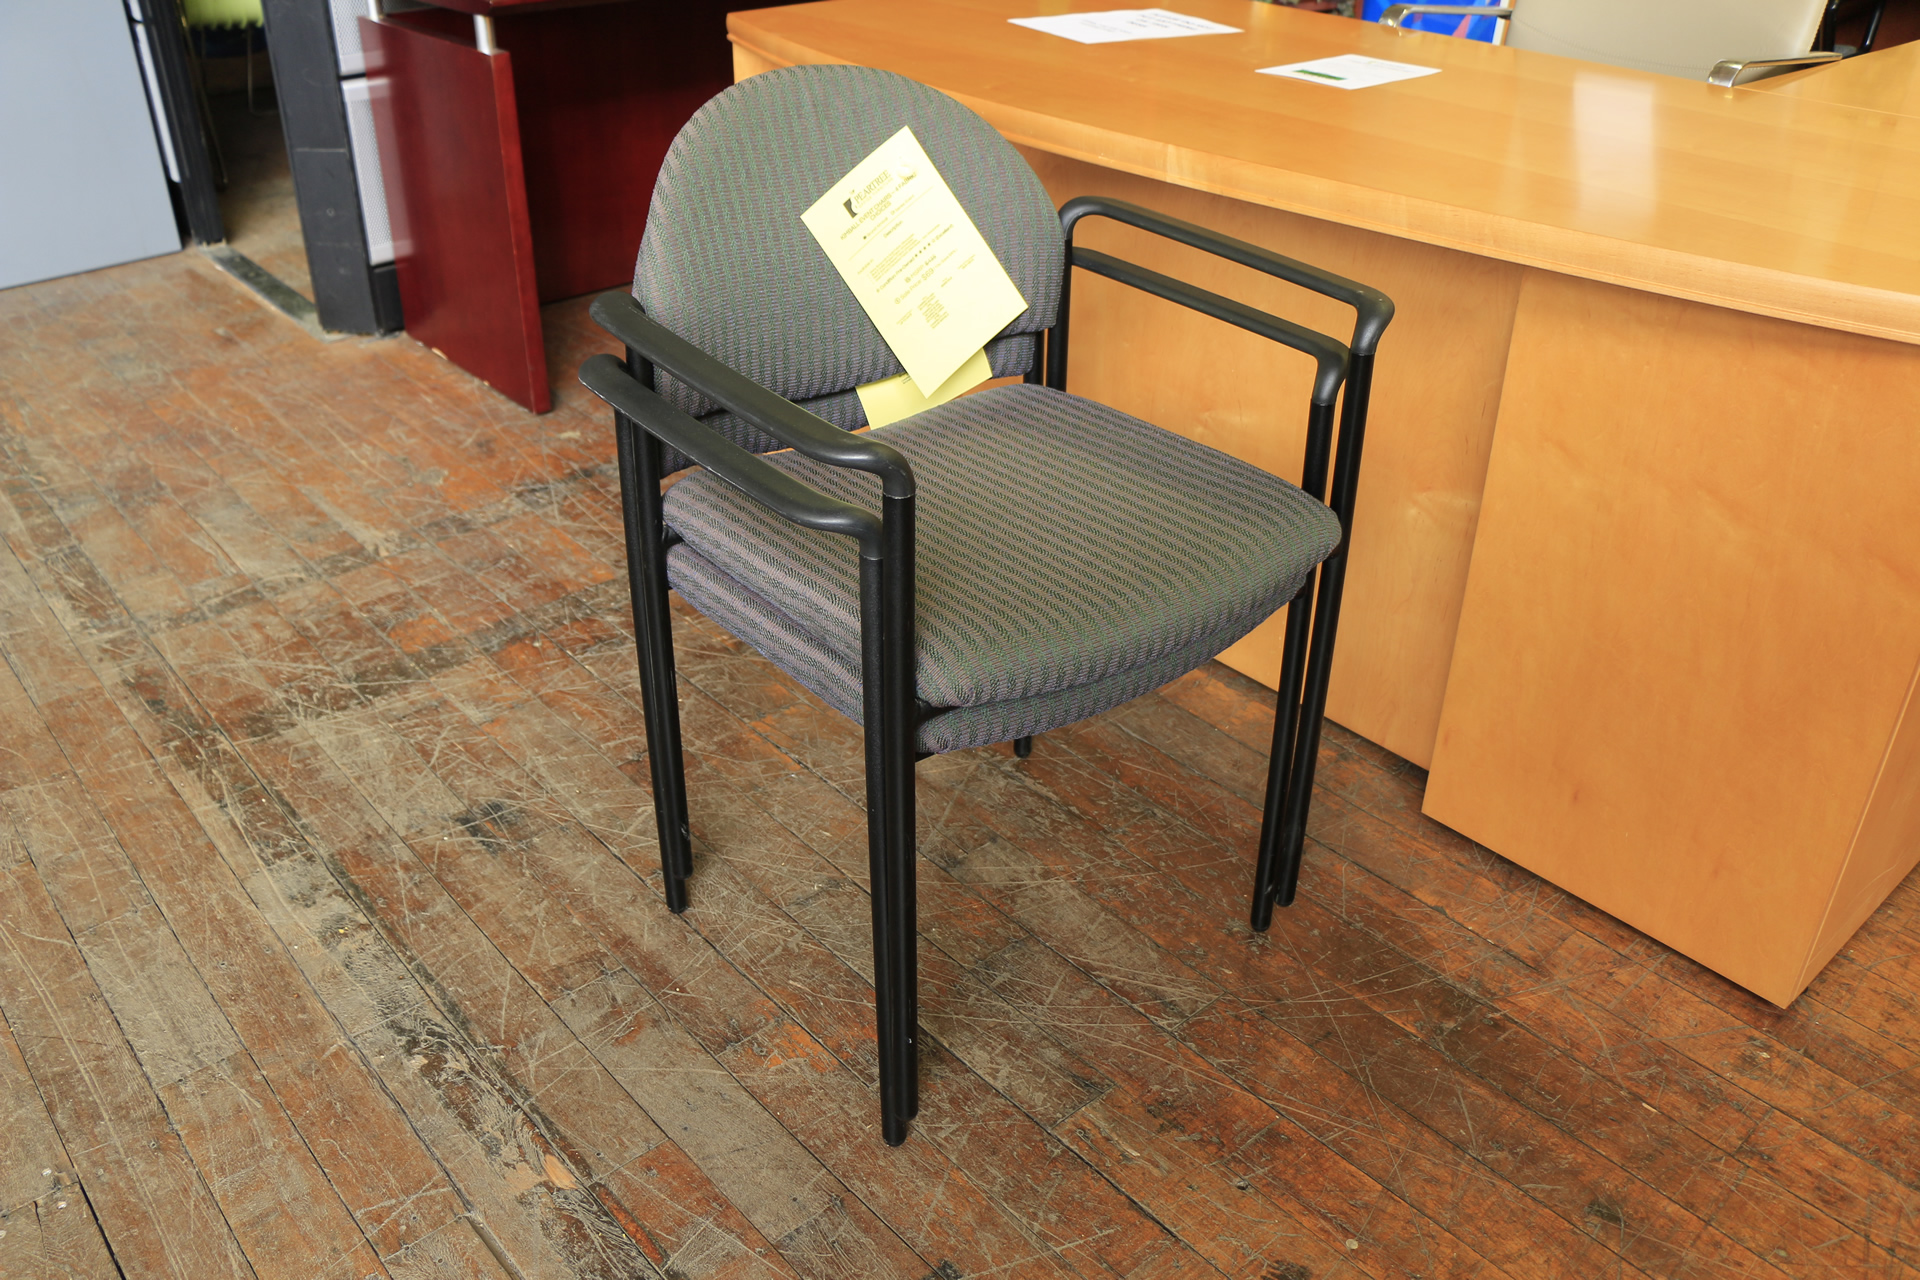 peartreeofficefurniture_peartreeofficefurniture_peartreeofficefurniture_2015-06-02_17-32-26.jpg